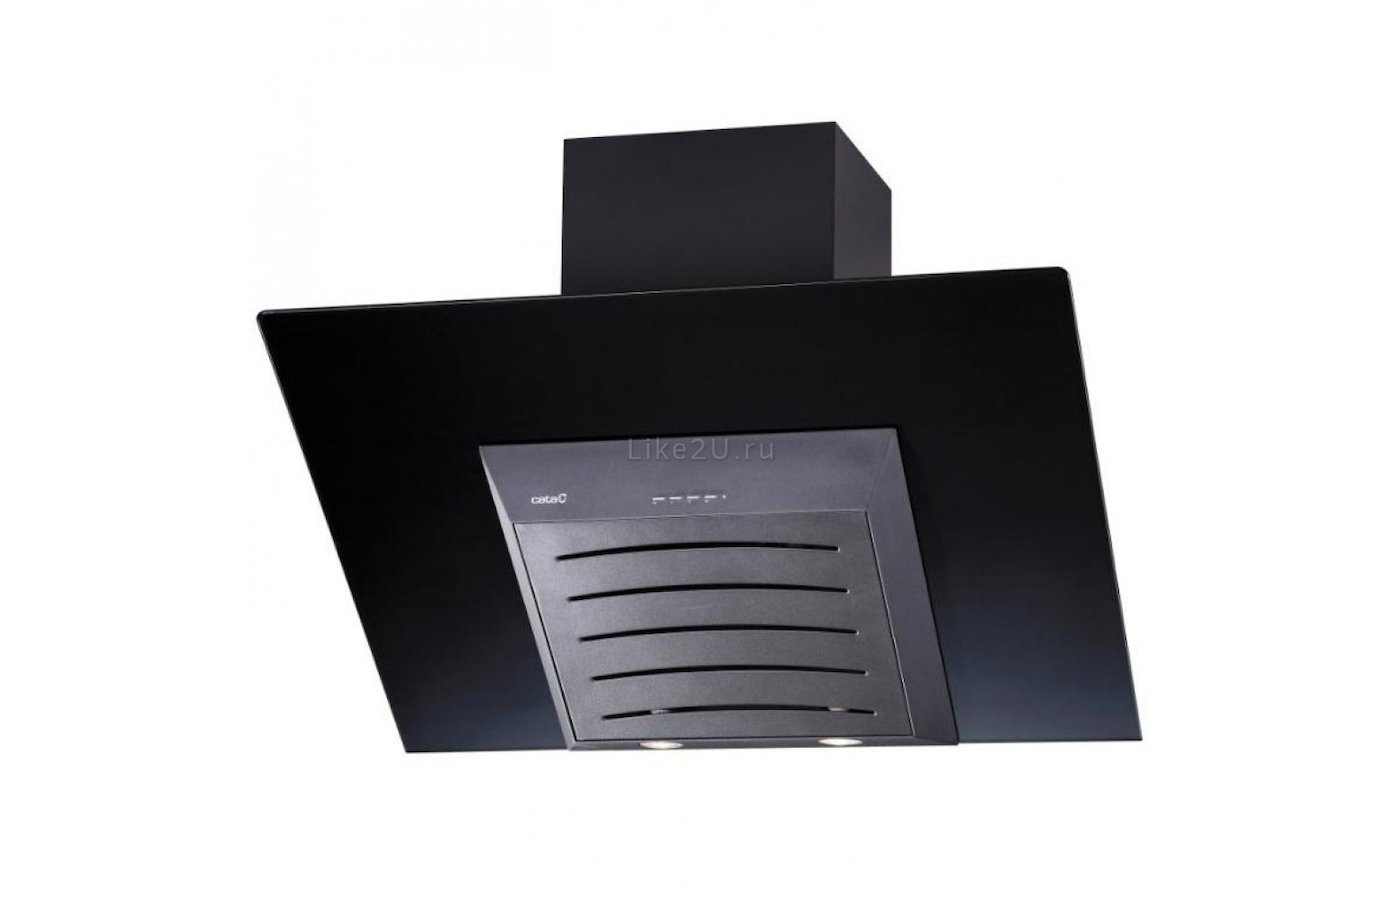 Вытяжка CATA VENERE VL3 900 BLACK GLASS